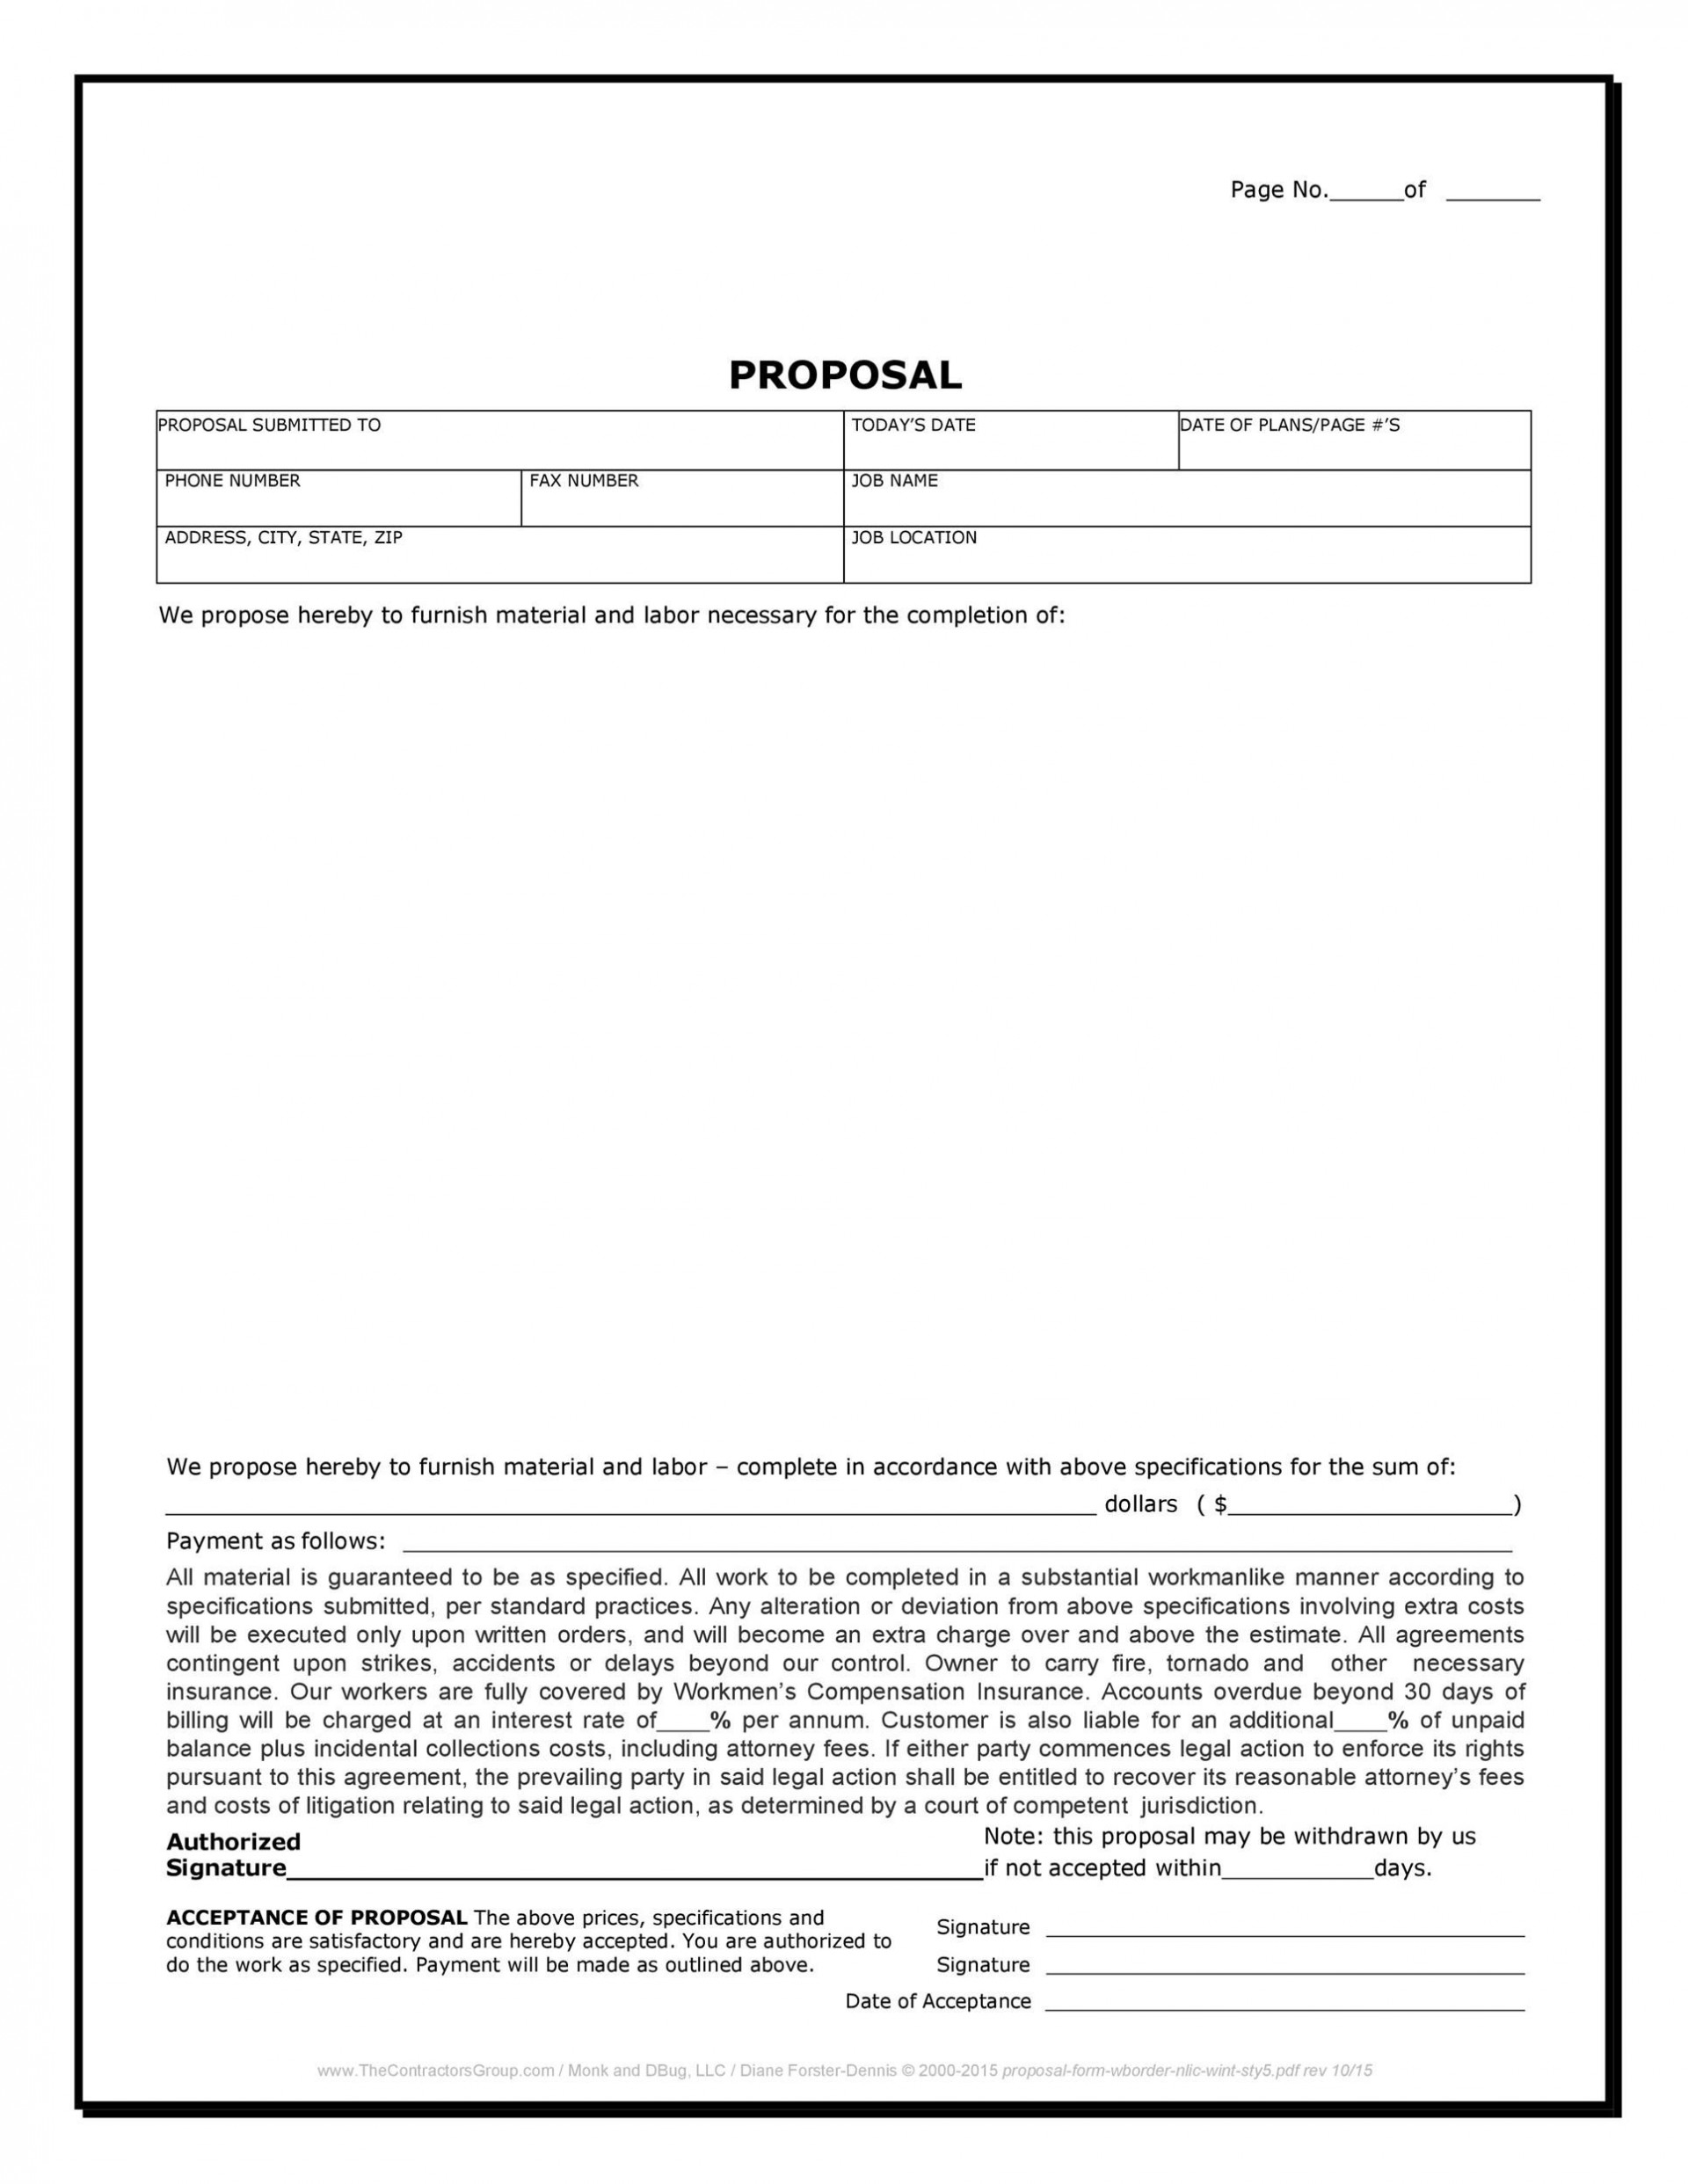 009 Archaicawful Construction Job Proposal Template Design  Example1920